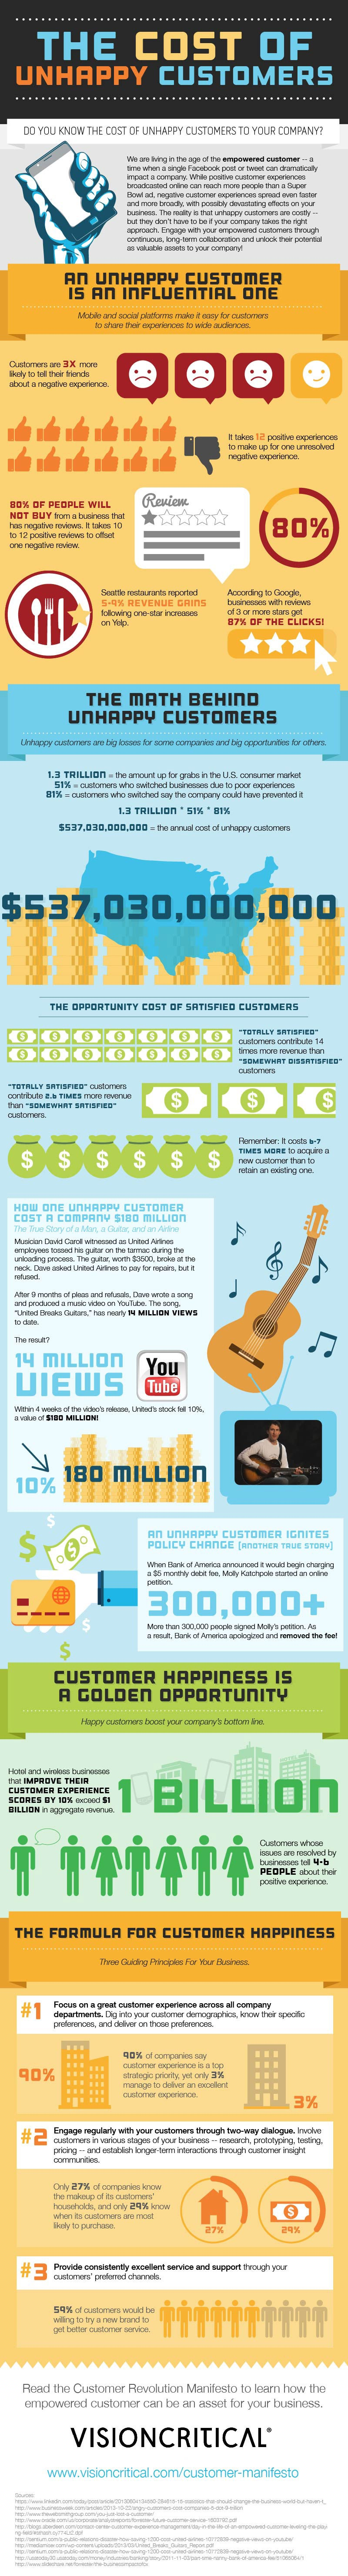 Why Businesses Can't Afford to Upset Customers (Infographic)